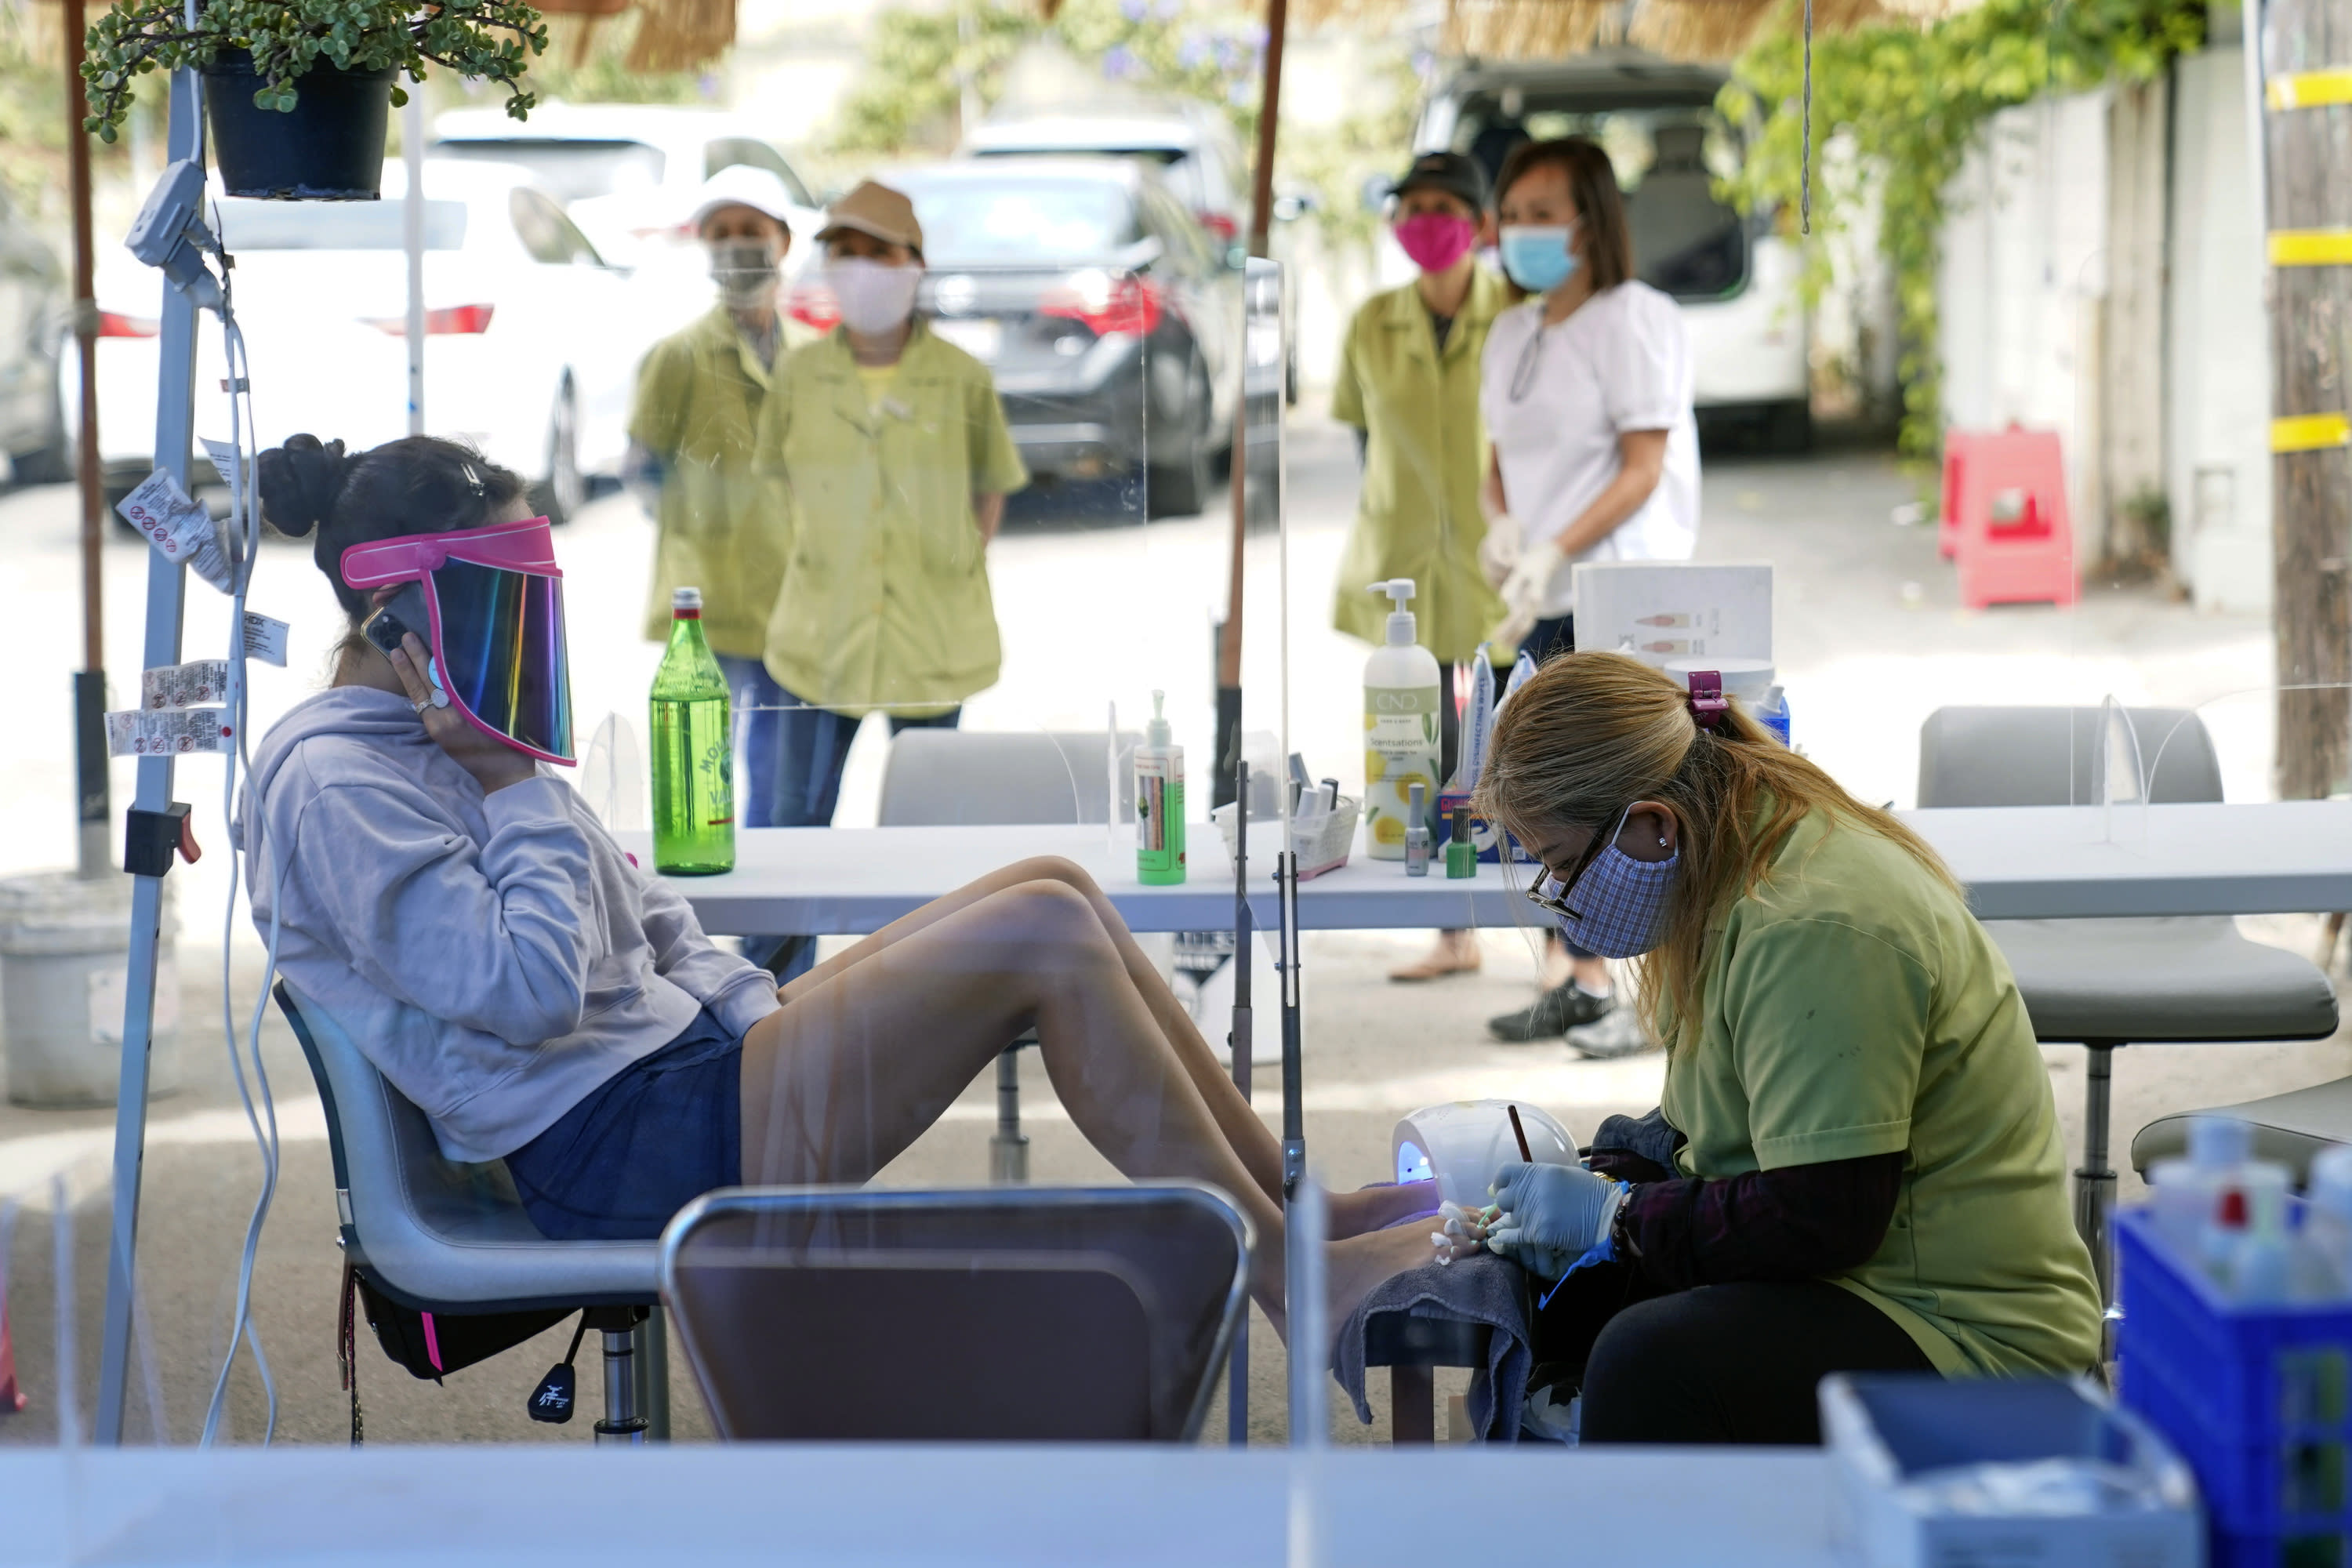 """FILE - In this July 22, 2020, file photo, Tyson Salomon, left, gets a pedicure outside Pampered Hands nail salon in Los Angeles. A steady drop in coronavirus cases across California cleared the way Tuesday, Sept. 22, 2020, for the wider reopening of businesses in nine counties, including much of the San Francisco Bay Area, the state's top health official said. Dr. Mark Ghaly, the state health secretary, said nail salons could also reopen with restrictions, though he cautioned that California's reopening must remain """"slow and stringent"""" and residents cannot let their guard down as flu season arrives and cases rise in Europe and other parts of the U.S. (AP Photo/Ashley Landis, File)"""